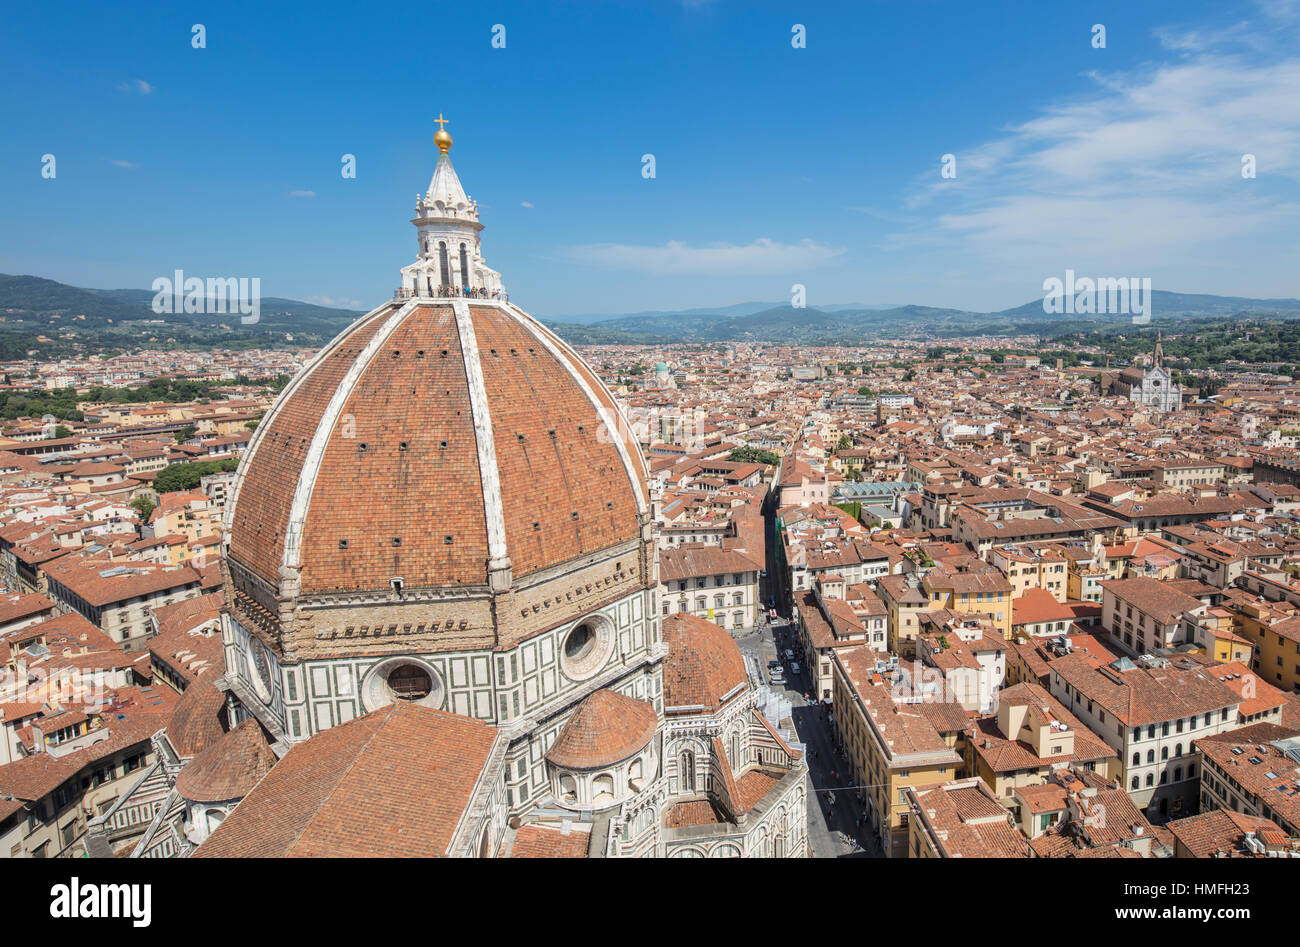 City Of Florence: Florence Duomo Brunelleschis Dome Cathedral Stock Photos